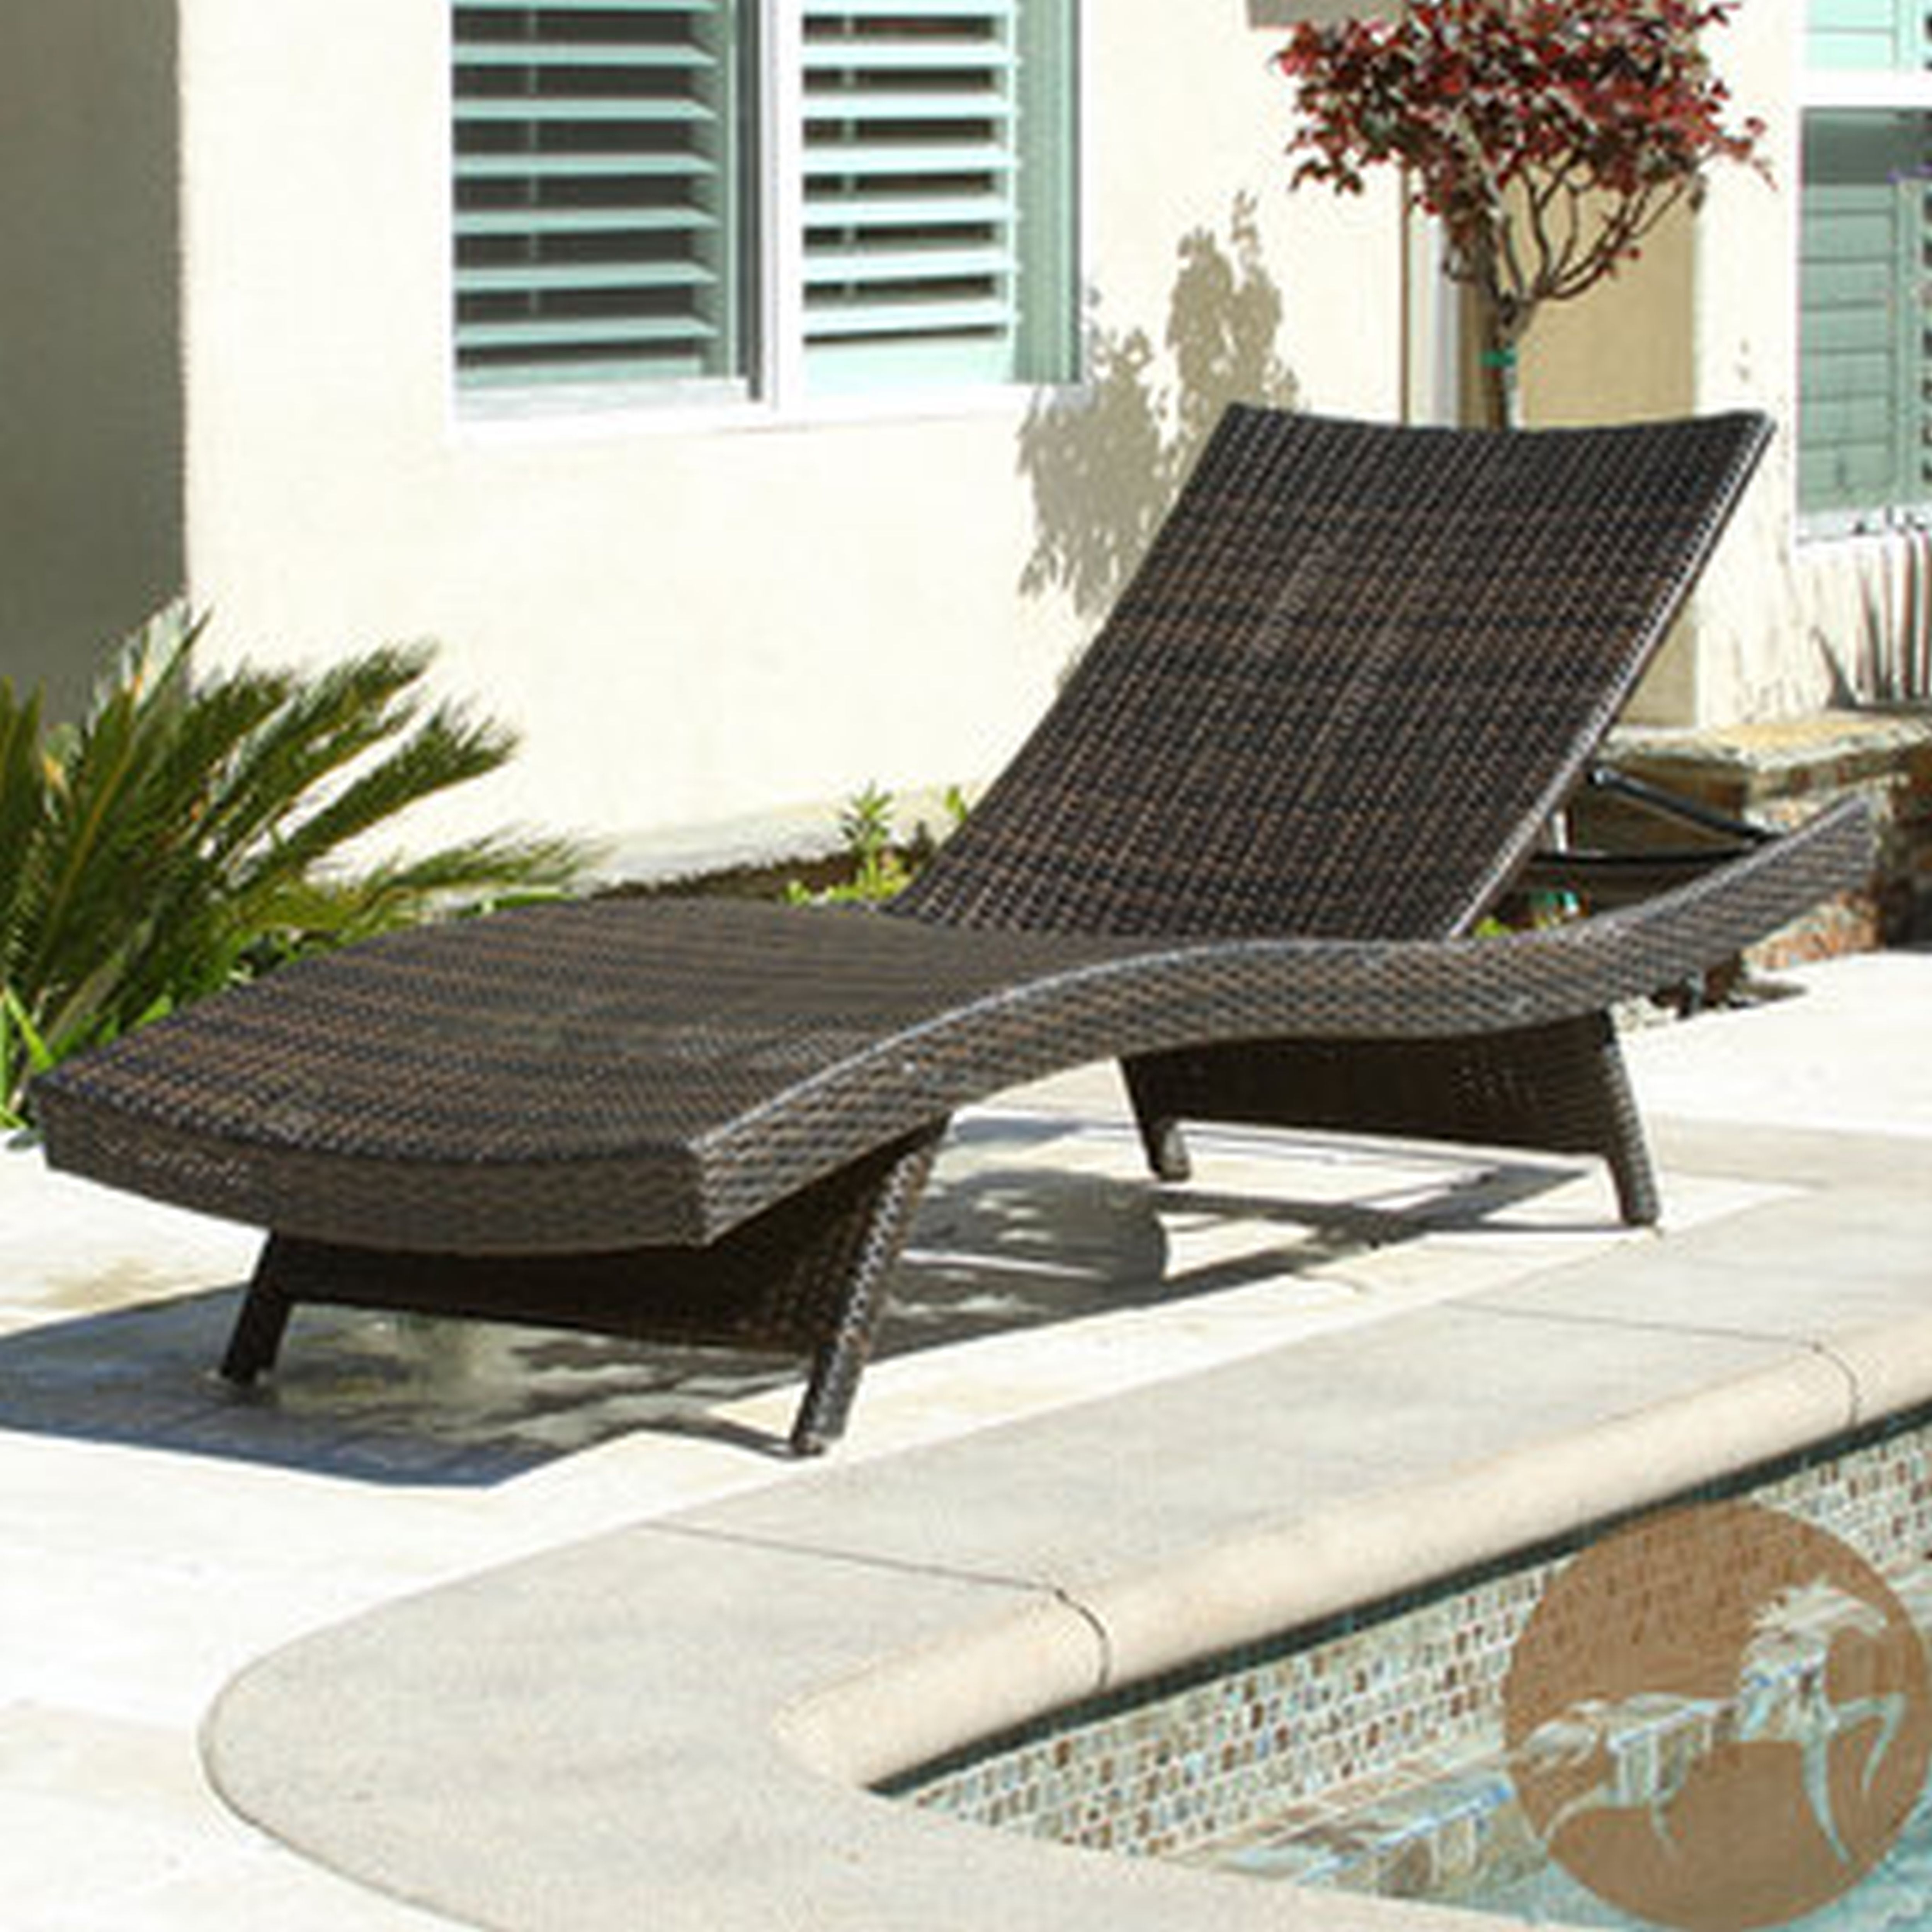 Well Known Plastic Chaise Lounge Chairs For Outdoors Pertaining To Convertible Chair : Cushions Rattan Chair Cushions High Back Patio (View 12 of 15)